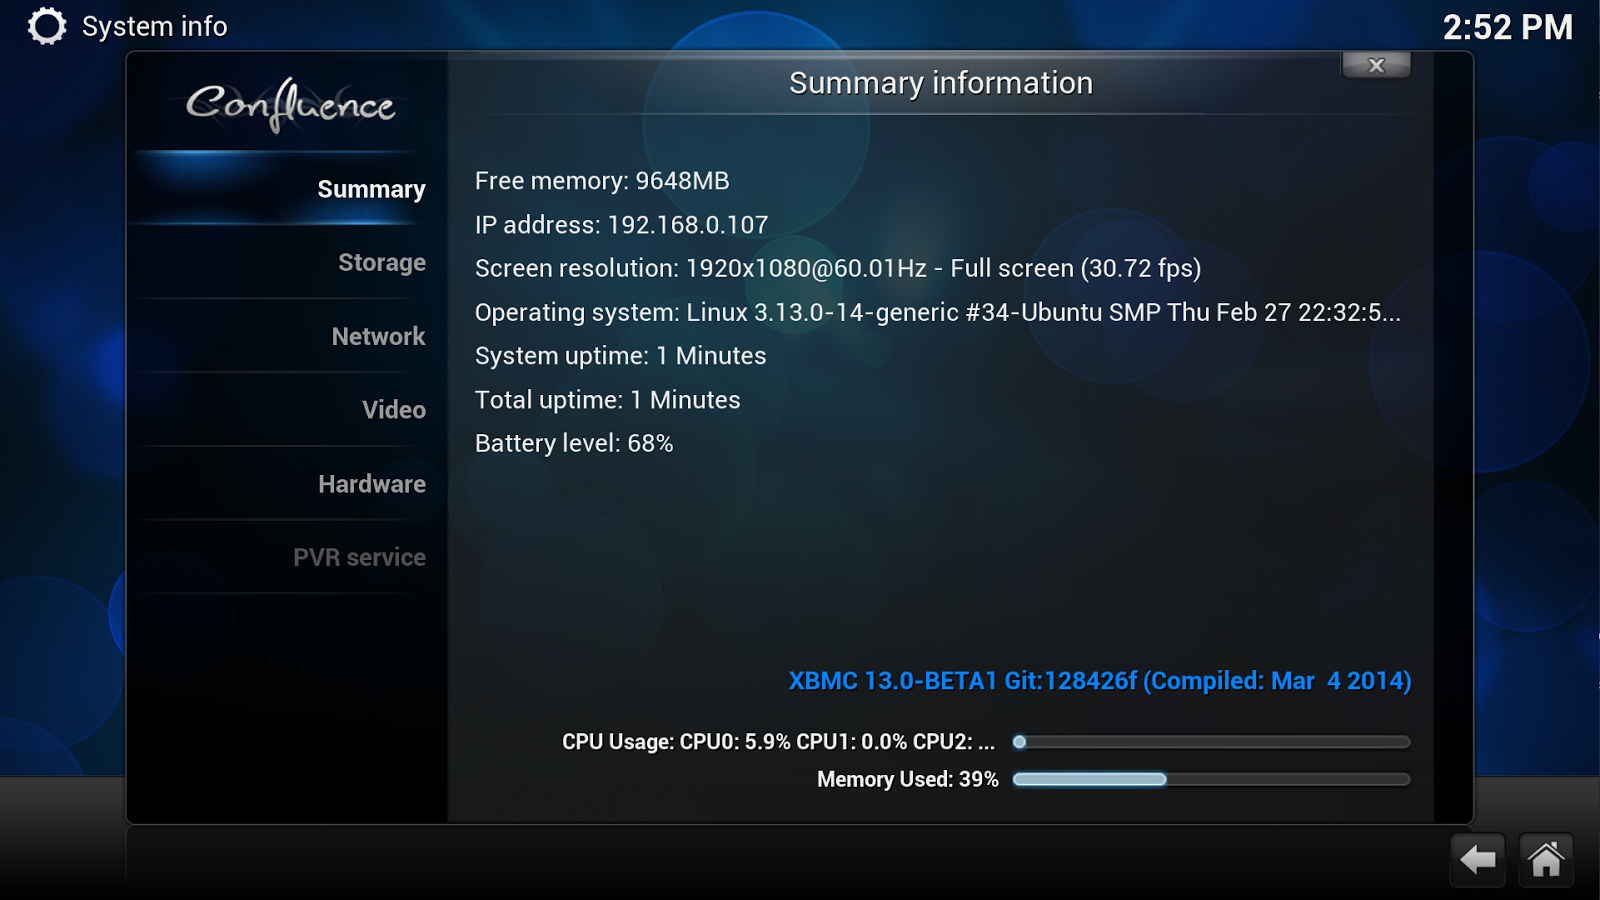 XBMC 13.0 gotham screenshots